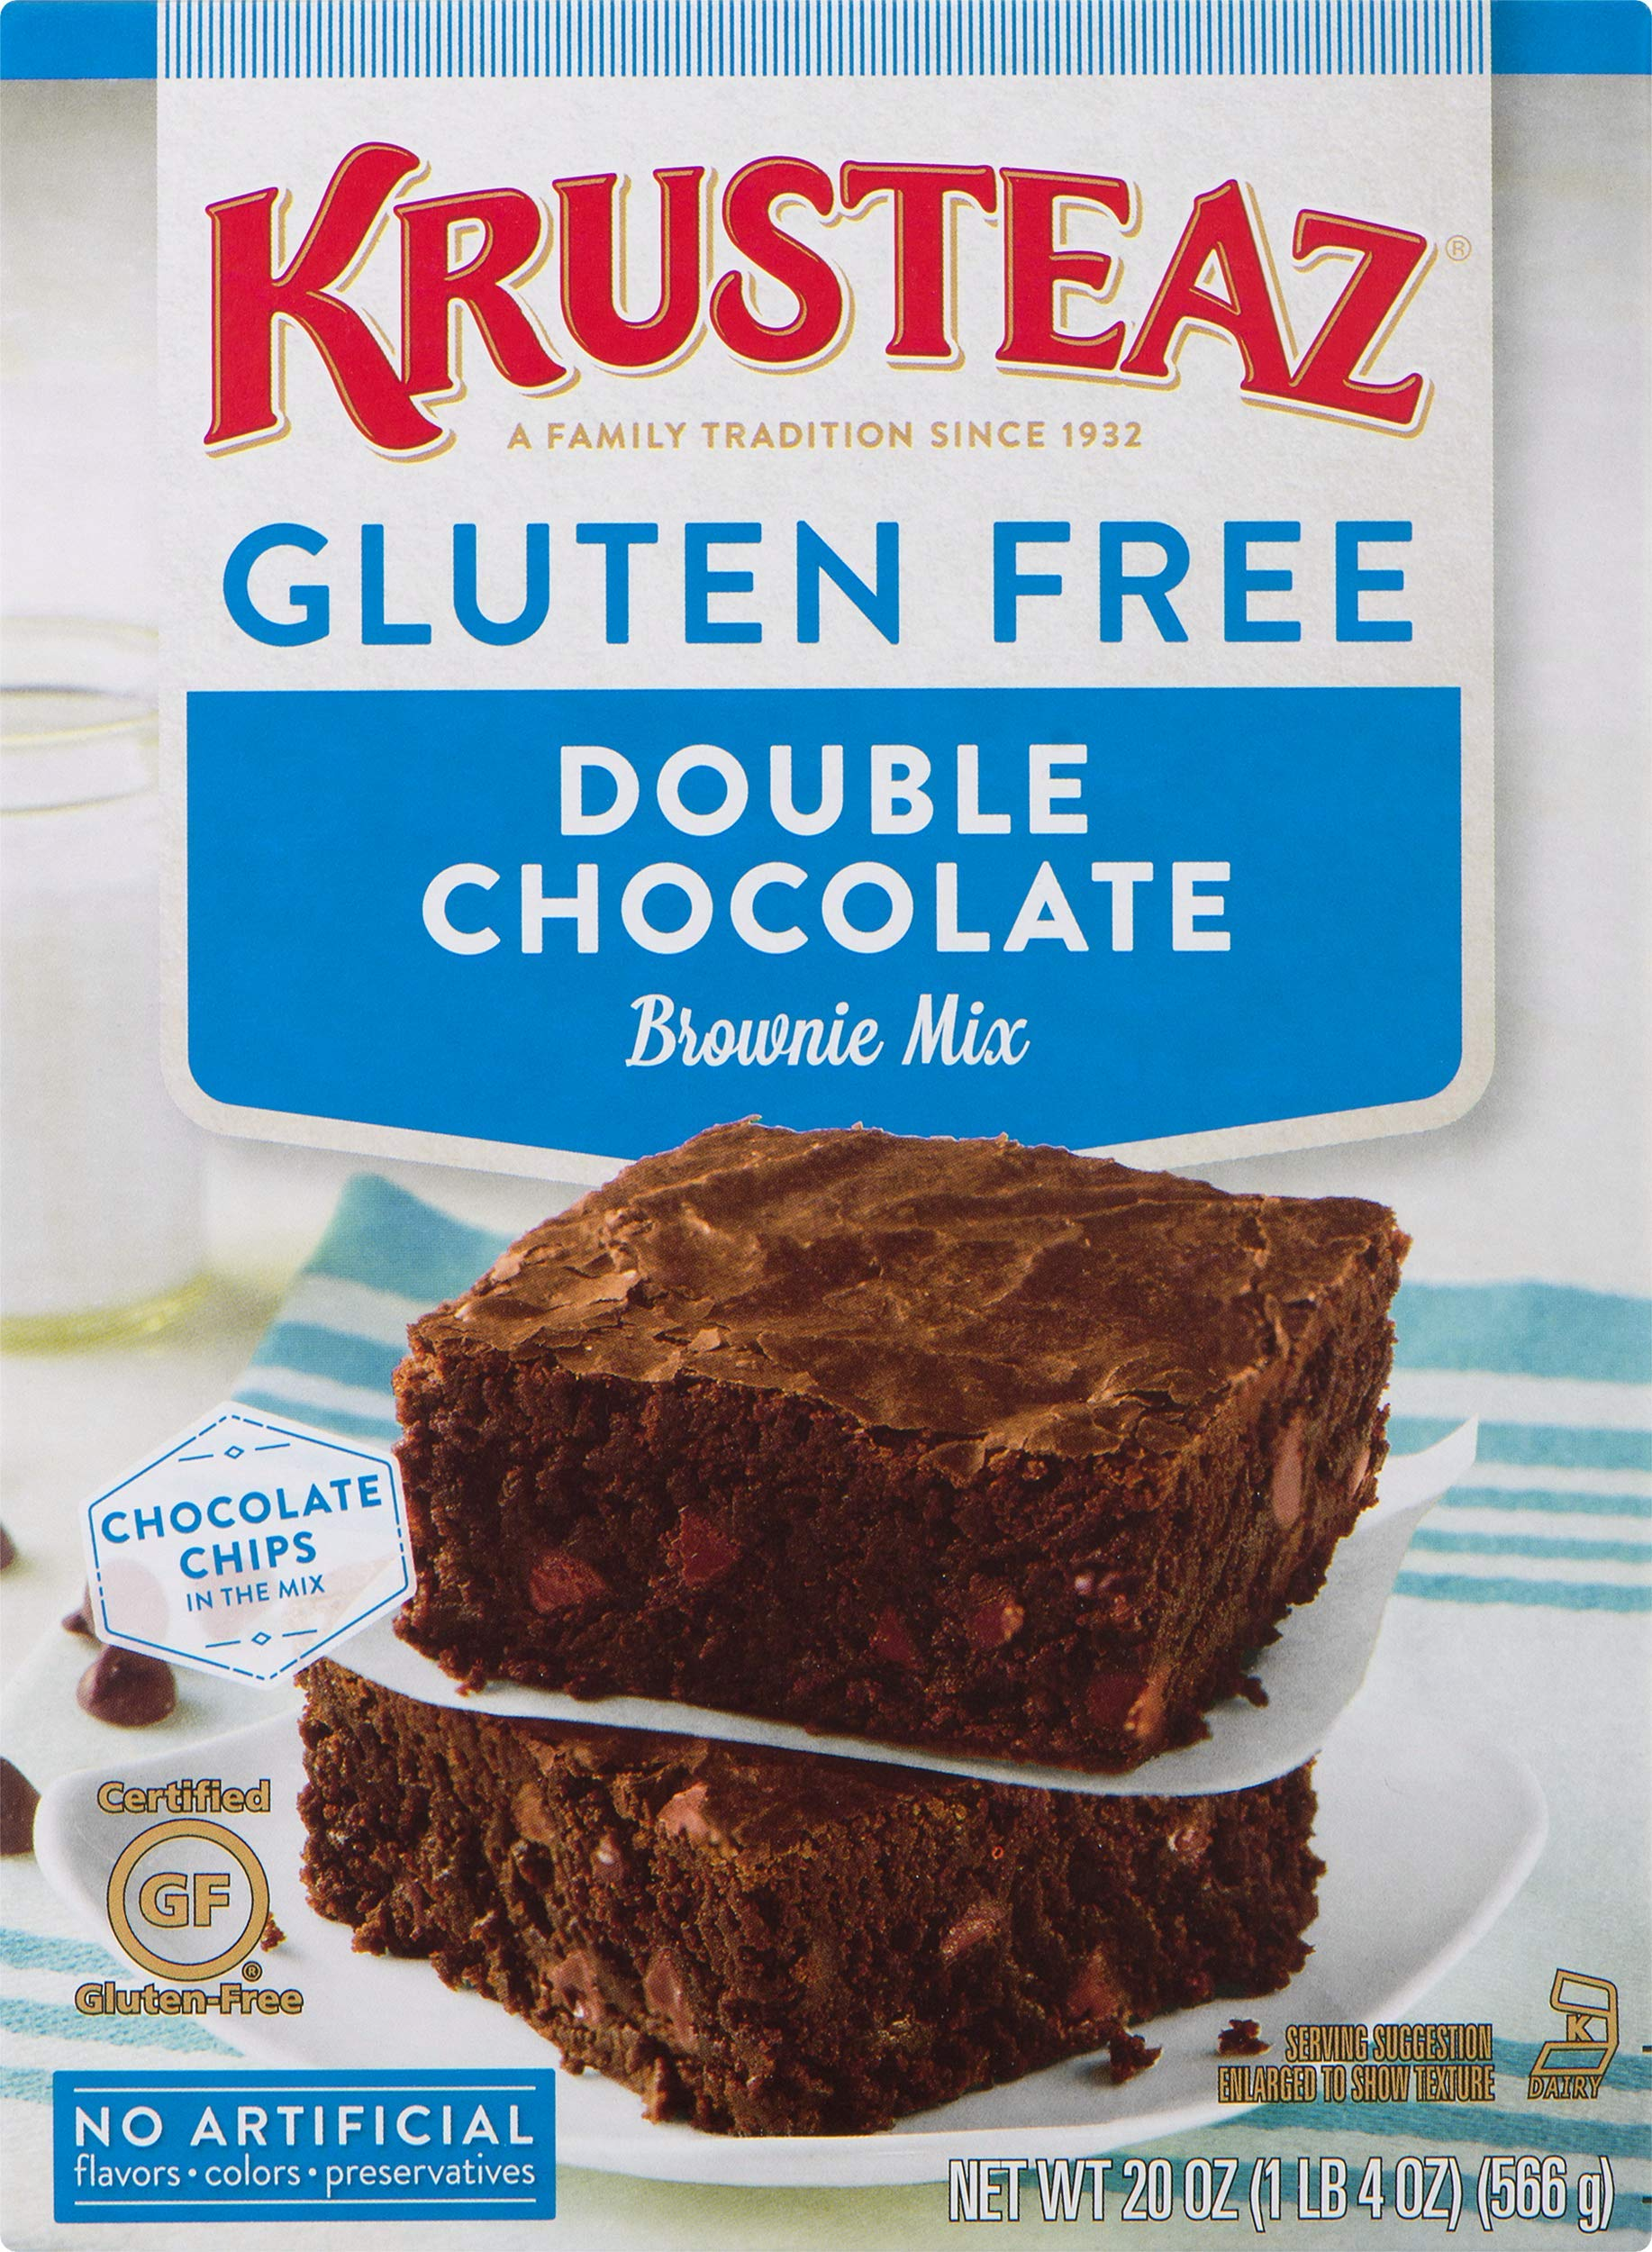 Krusteaz Gluten Free Double Chocolate Brownie Mix, 20-Ounce Boxes (Pack of 8) by Krusteaz